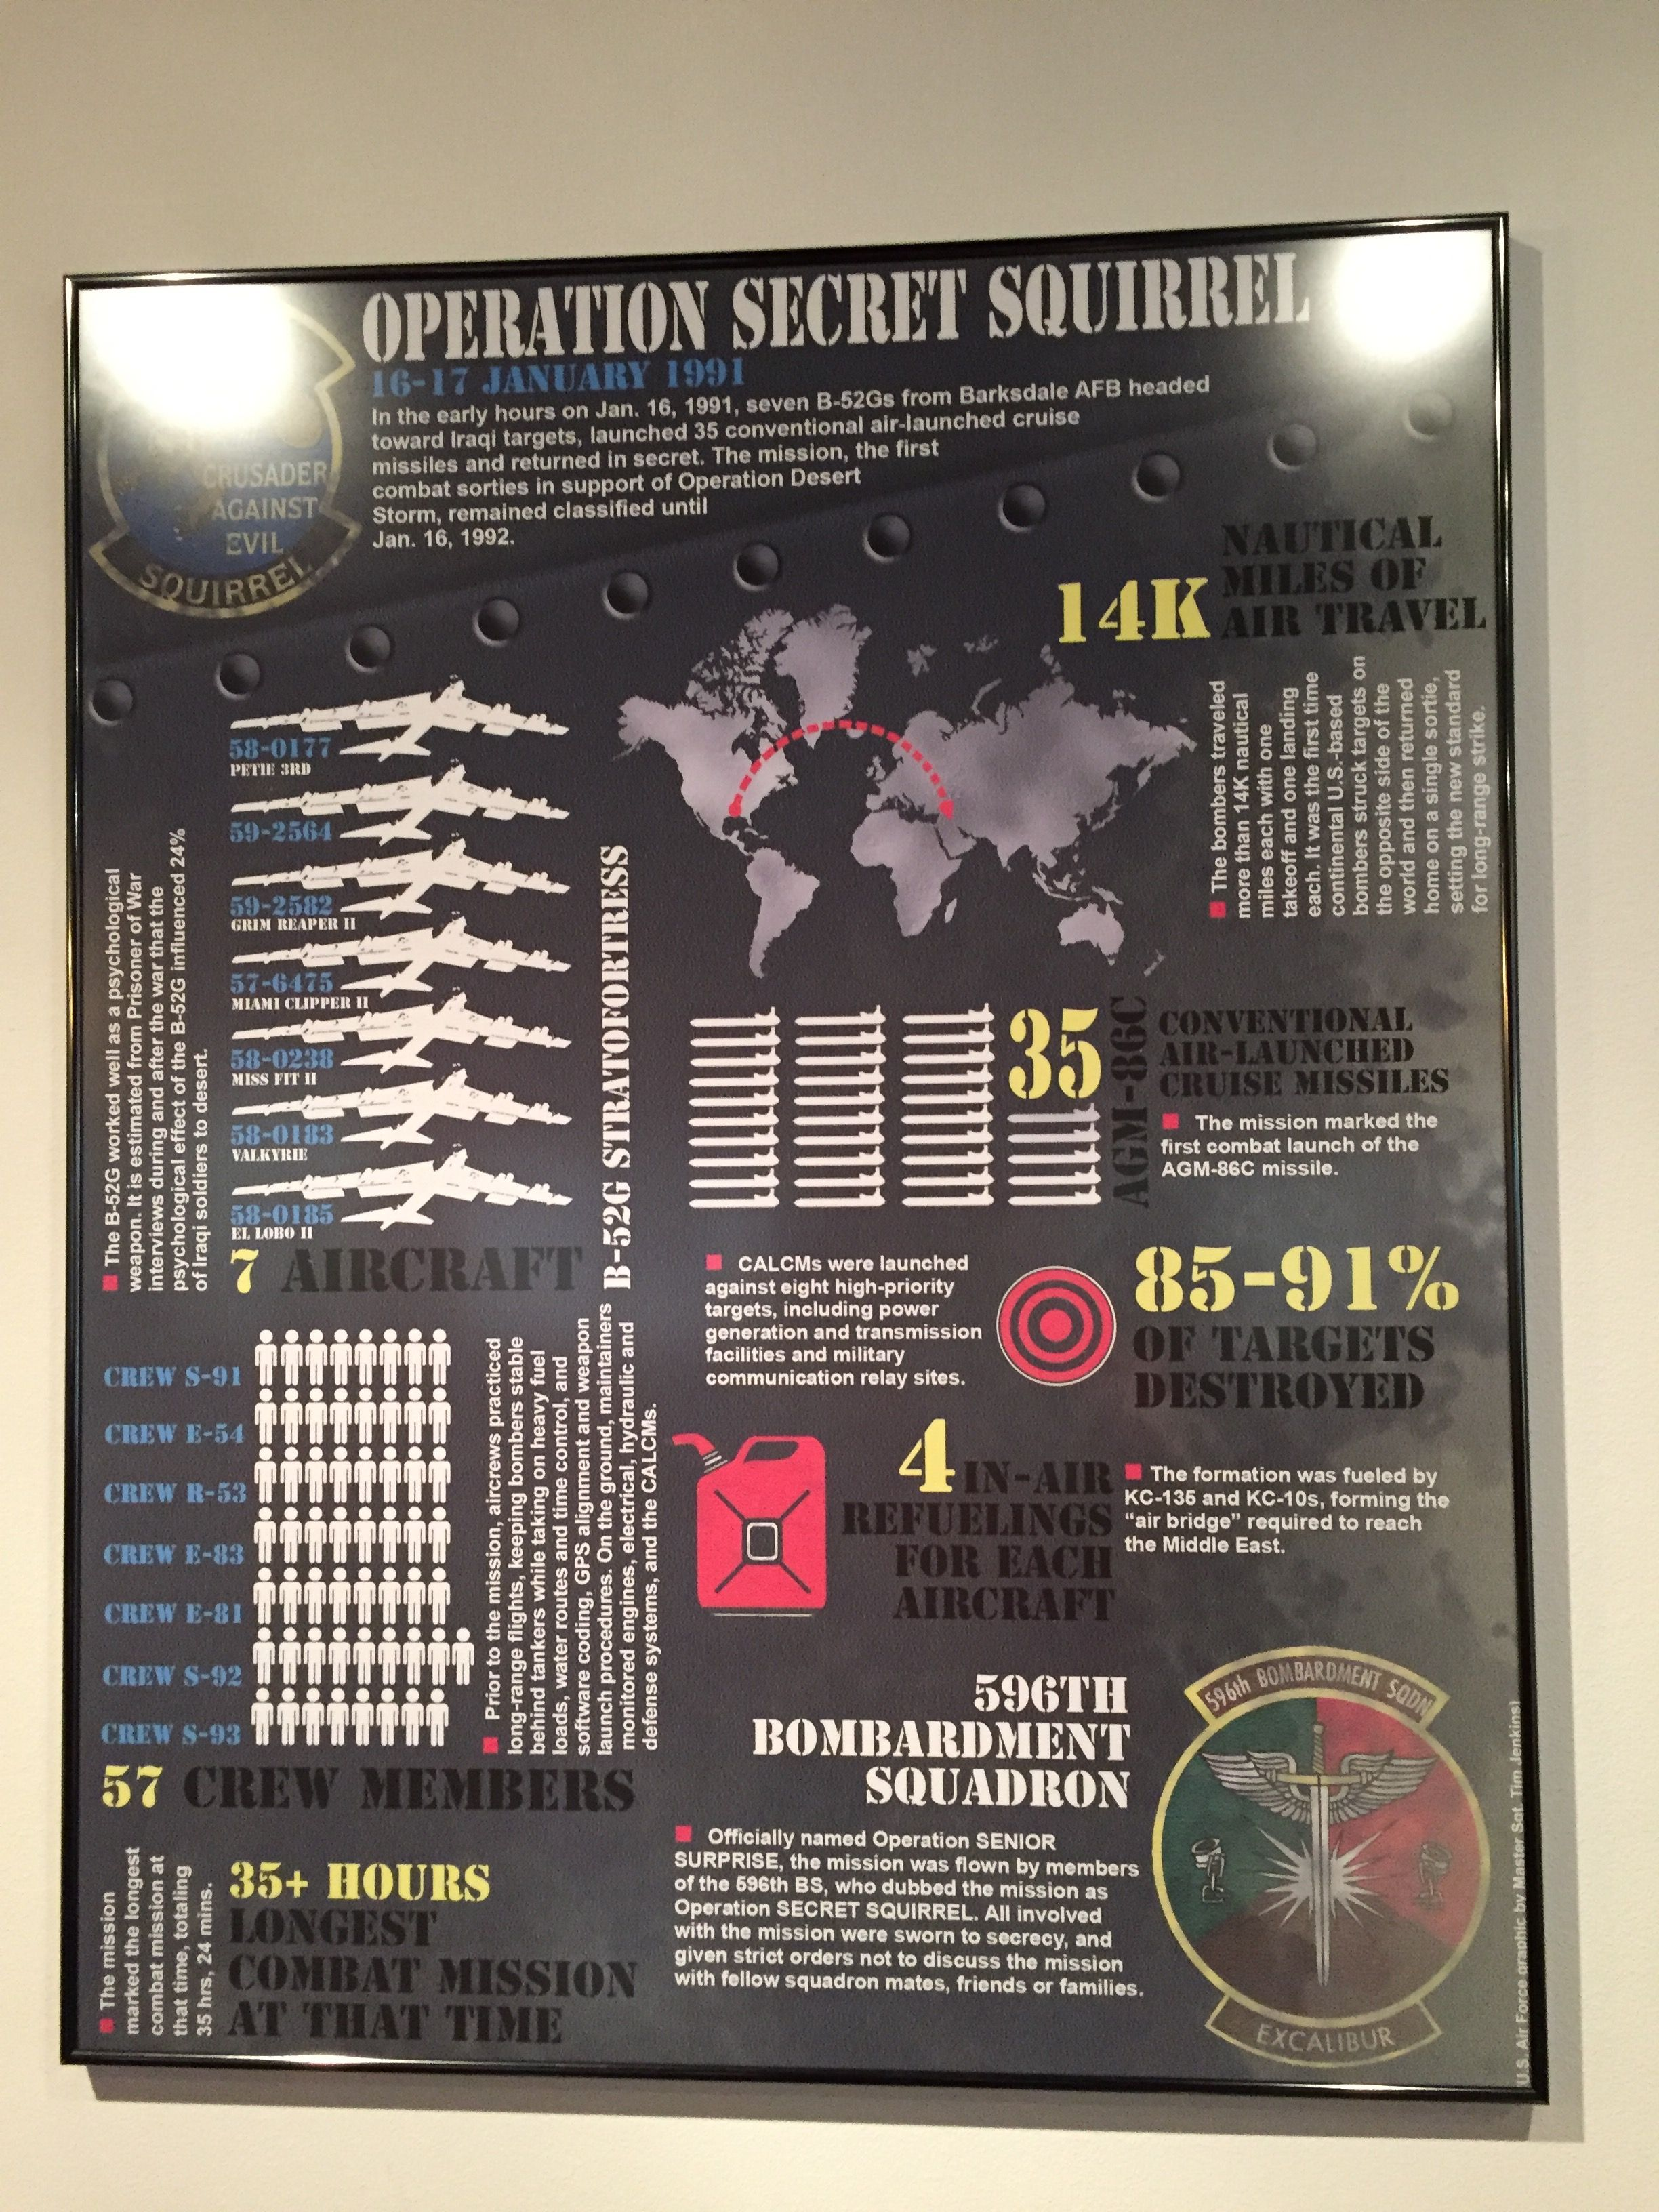 Operation Secret Squirrel infographic poster at the Global